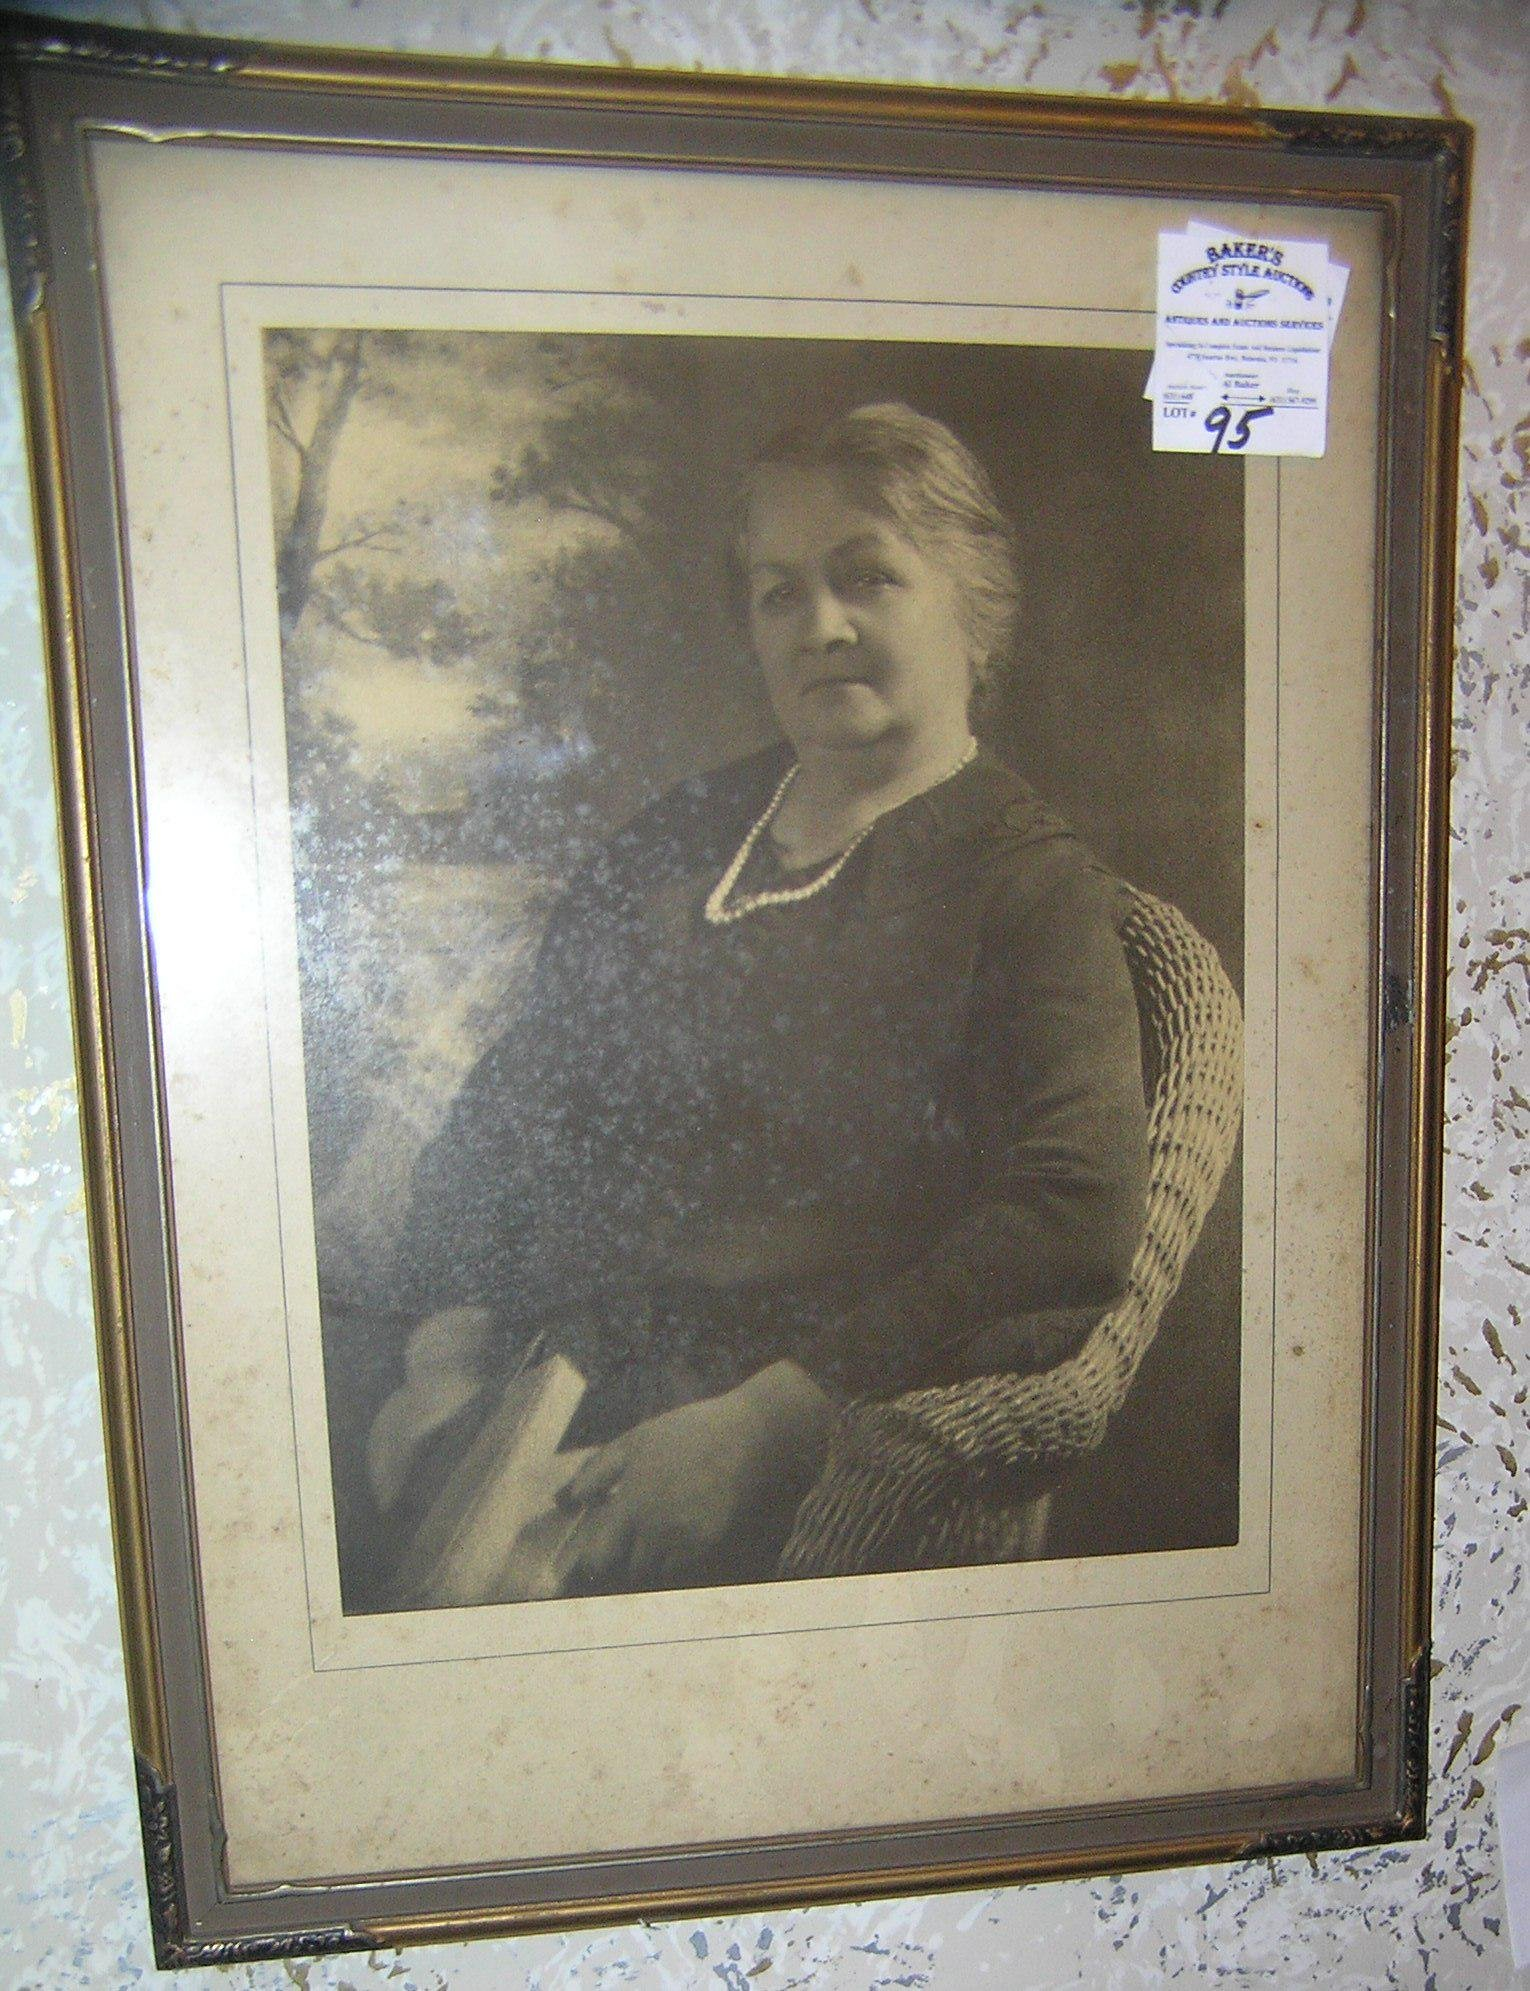 Antique photograph of a woman in a wicker chair